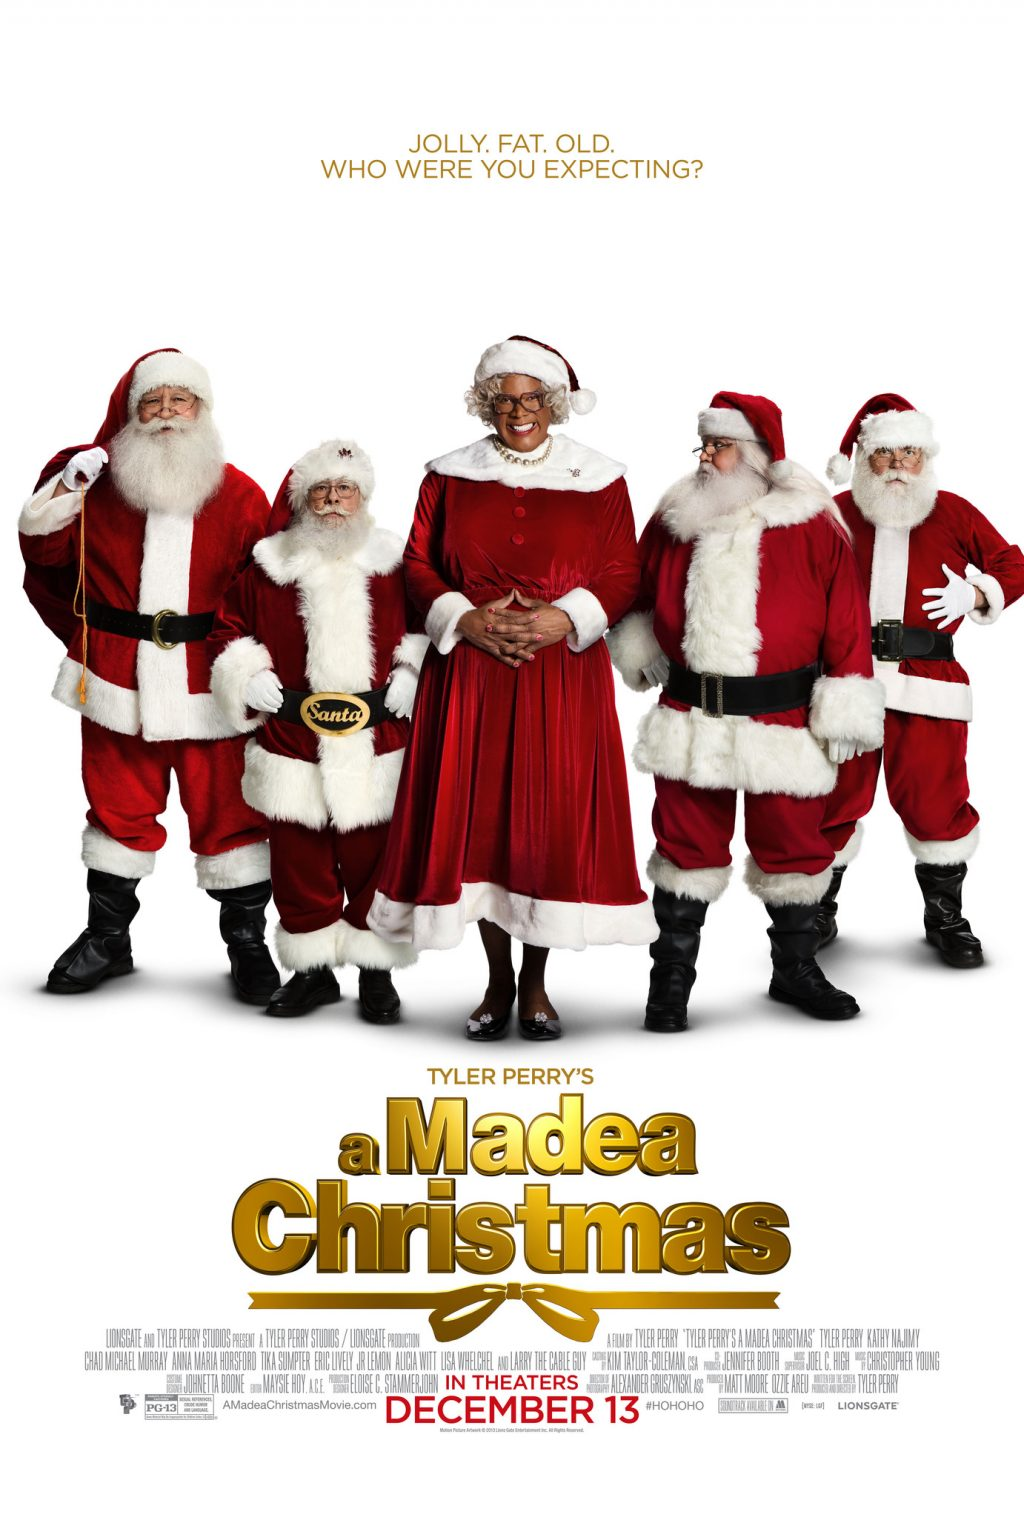 a madea christmas 2013 � tyler perry larry the cable